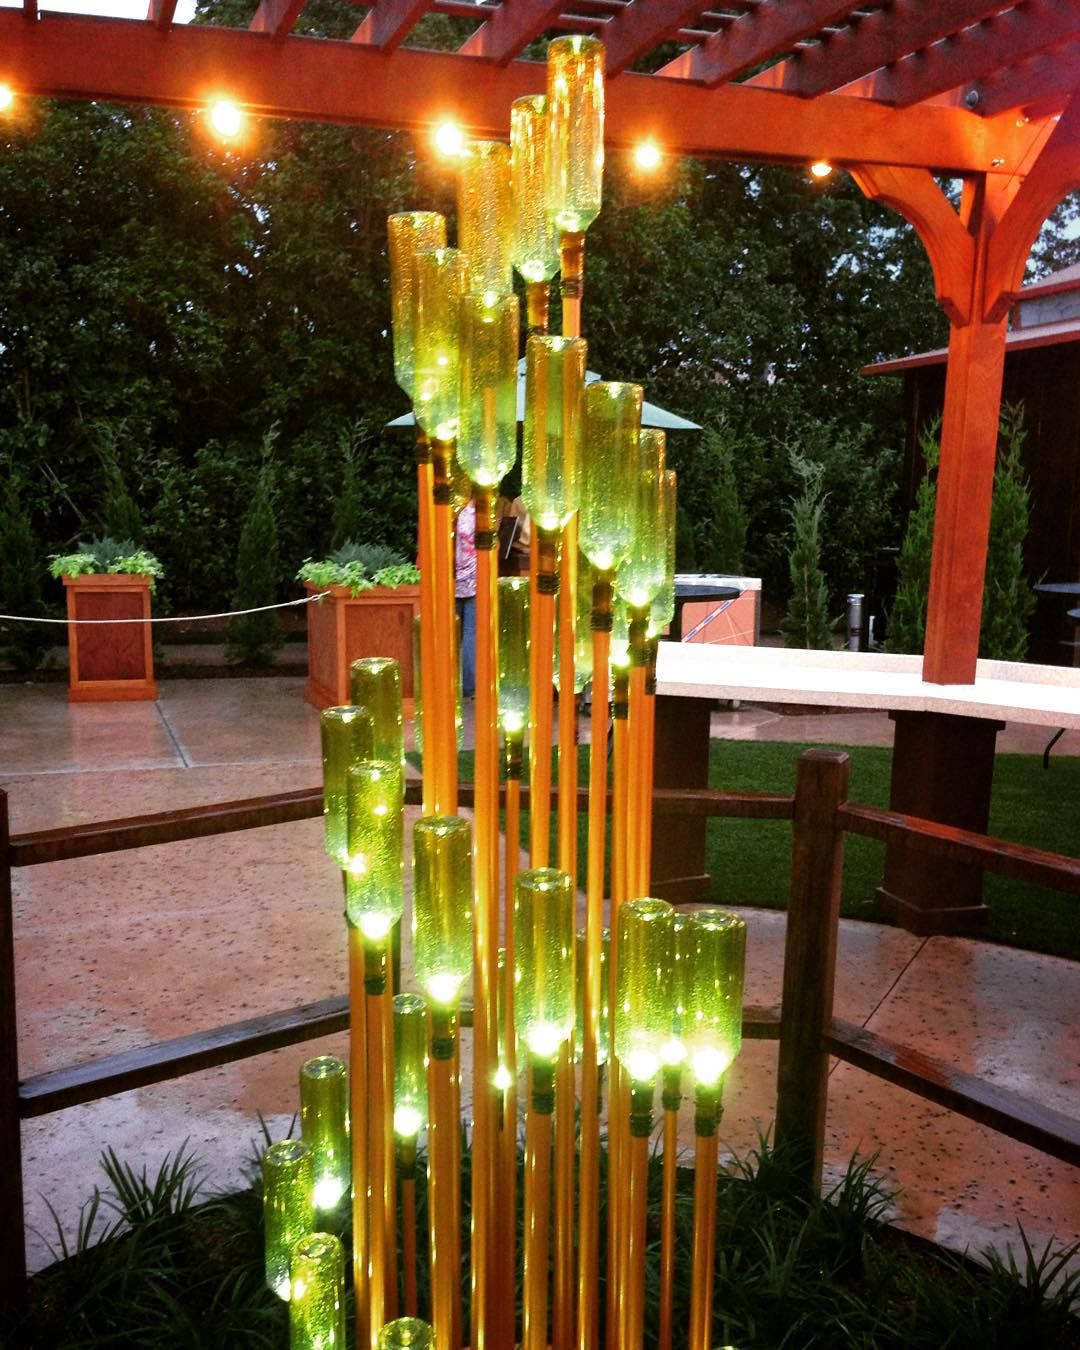 Spotted this gorgeous light fixture at epcot its just green wine jen yates on instagram spotted this gorgeous light fixture at epcot its just green wine bottles copper painted pvc pipe so great diy potential arubaitofo Image collections